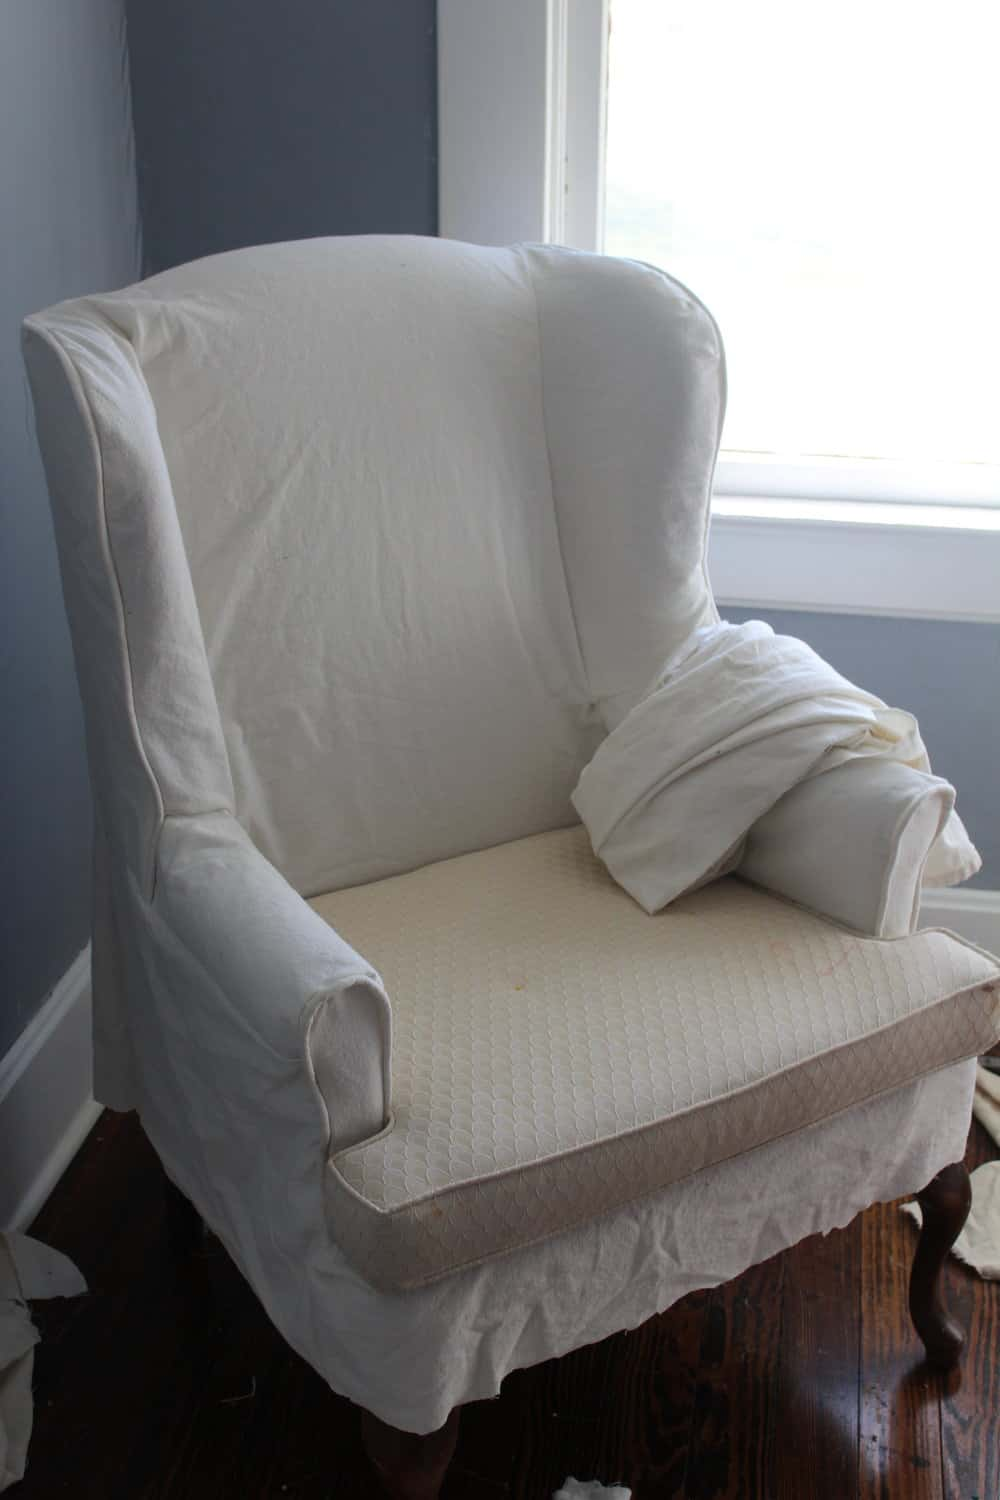 how to make slipcover for wingback chair ergonomic lowyat sew a farmhouse on boone after the main portion of was finished i added ruffle and piping bottom edge finish it off